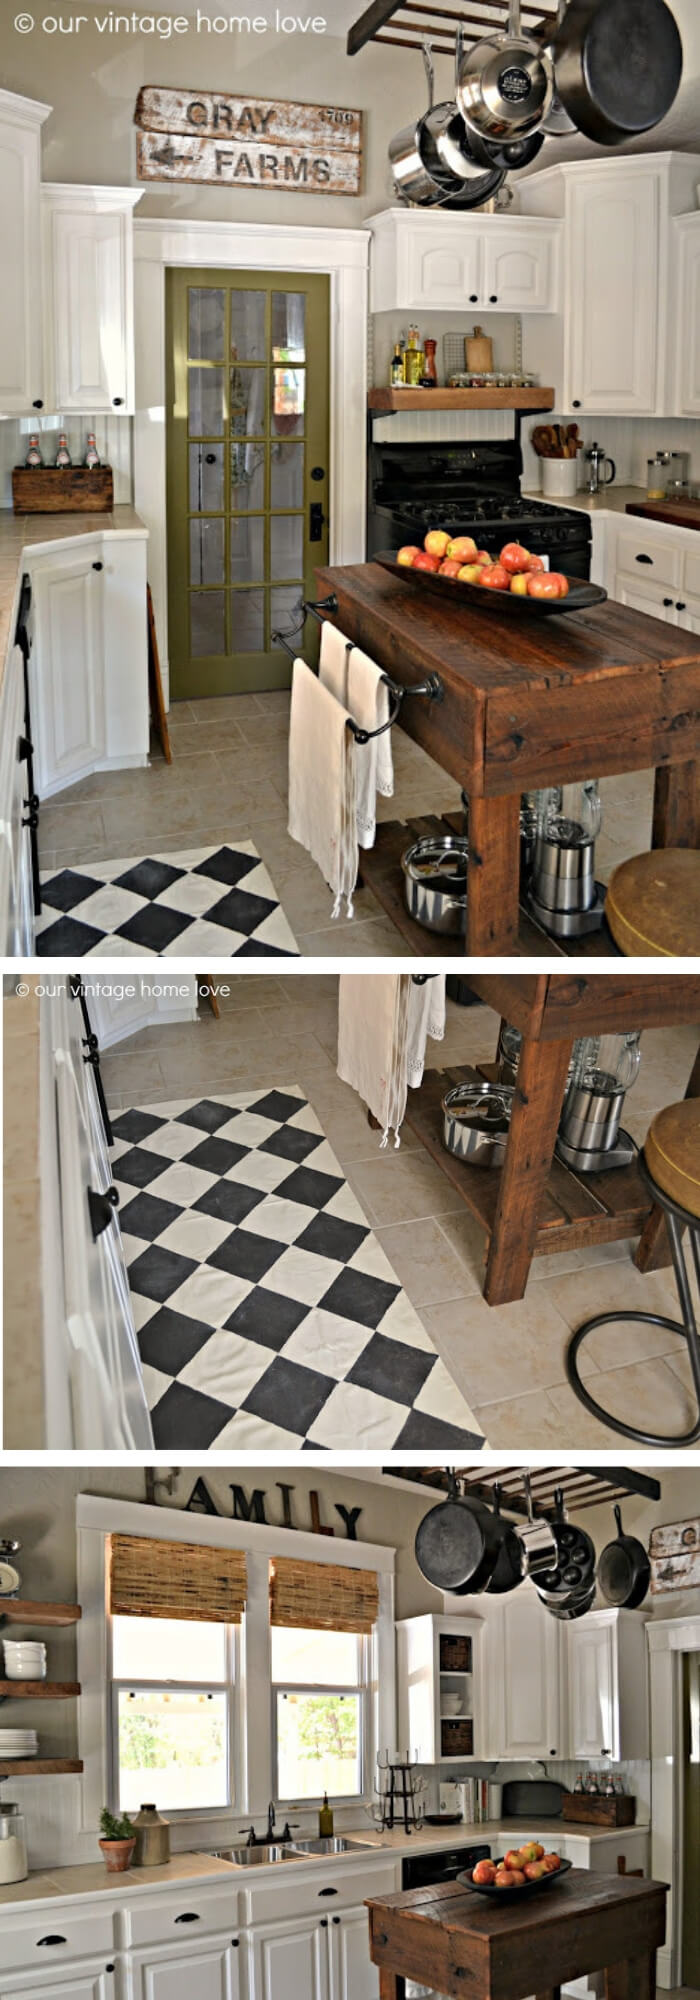 Dark wood Kitchen Island with a floor cloth in front of the sink | Inspiring Farmhouse Kitchen Design & Decor Ideas